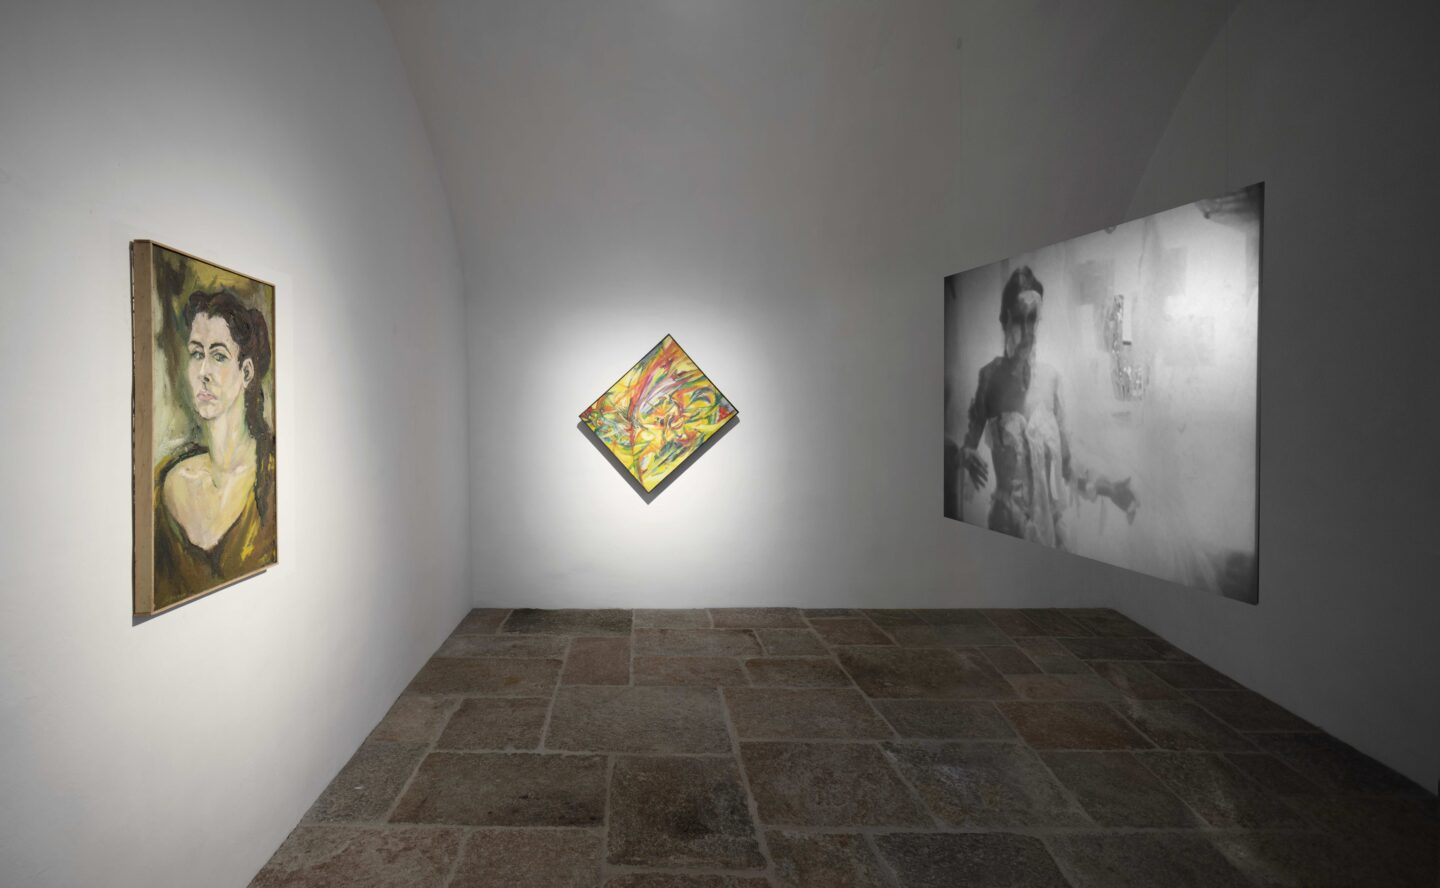 Exhibition View Groupshow «Up to and Including Limits: After Carolee Schneemann; view on Carolee Schneemann, Self-portrait, 1954-55, Pin Wheel, 1957 and Body Collage, 1967» at Muzeum Susch, Susch, 2019-2020 / Photo: Maja Wirkus / Courtesy: the artist and Muzeum Susch